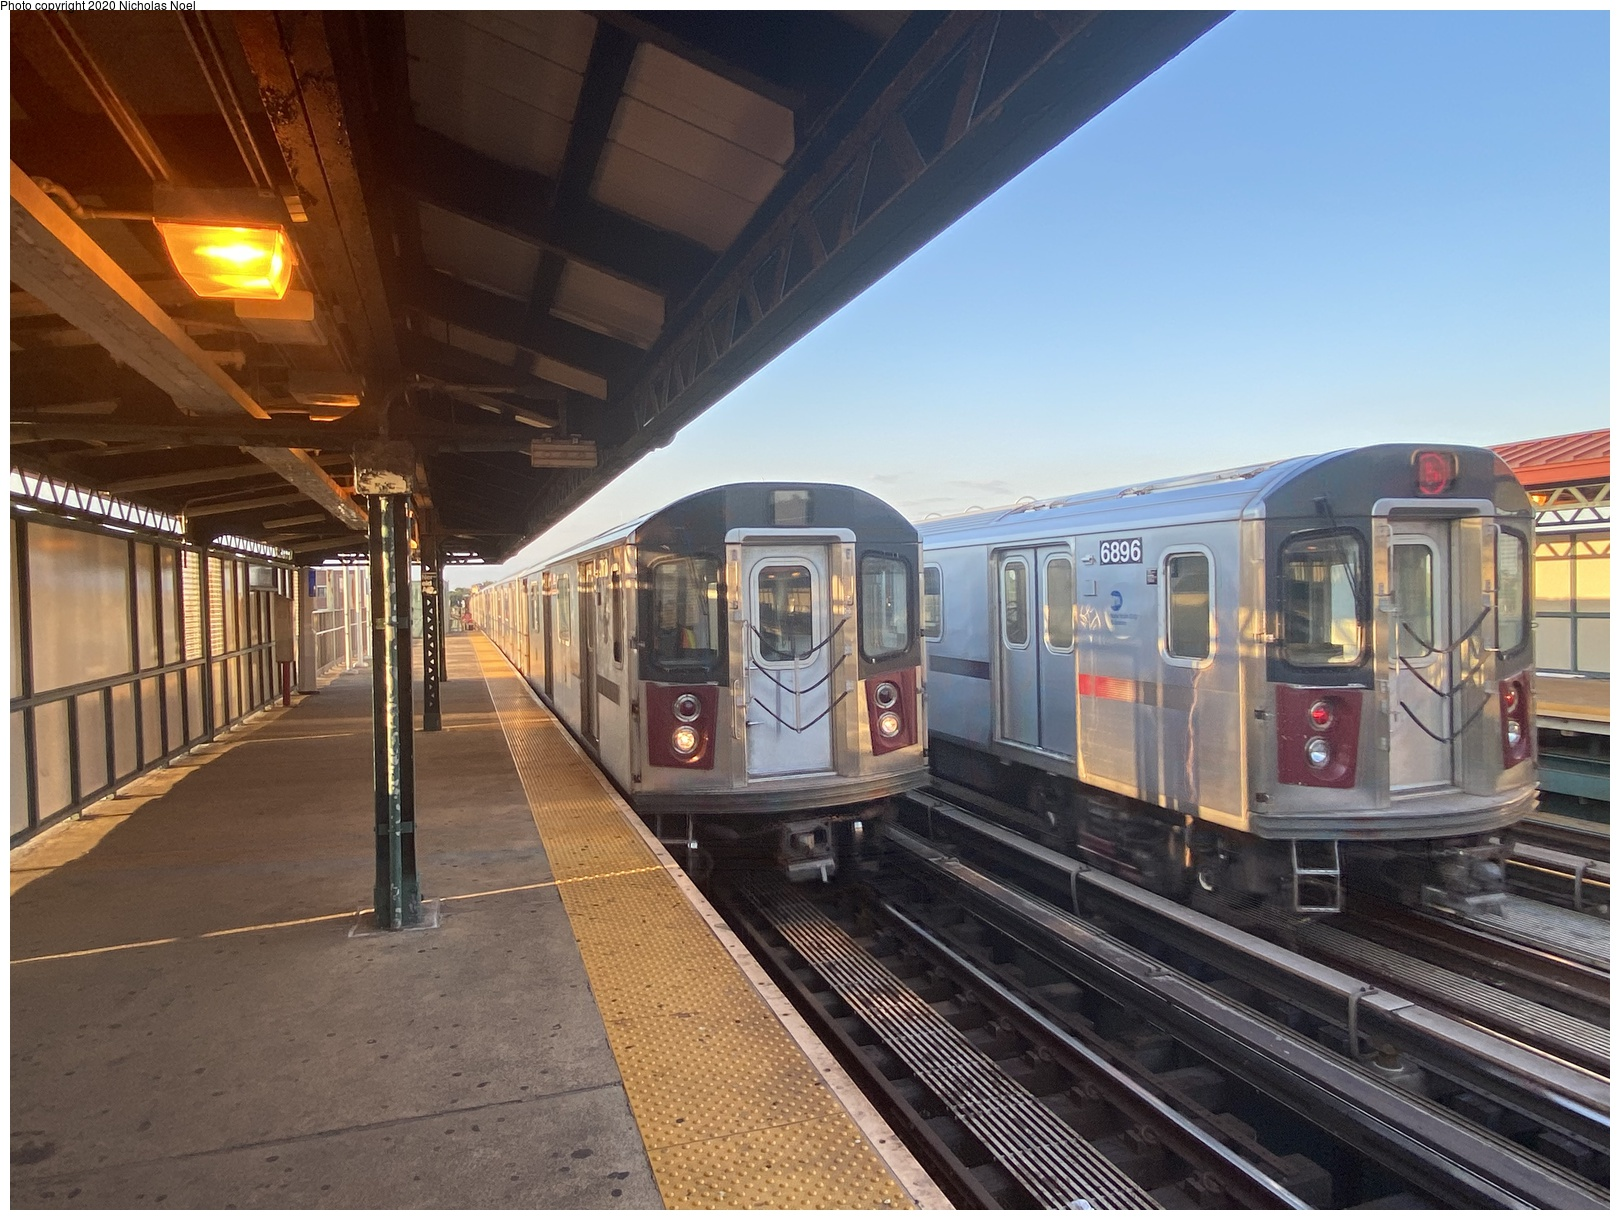 (357k, 1044x787)<br><b>Country:</b> United States<br><b>City:</b> New York<br><b>System:</b> New York City Transit<br><b>Line:</b> BMT Myrtle Avenue Line<br><b>Location:</b> Metropolitan Avenue <br><b>Car:</b> BMT Elevated Gate Car  <br><b>Photo by:</b> Joel Shanus<br><b>Viewed (this week/total):</b> 7 / 1655